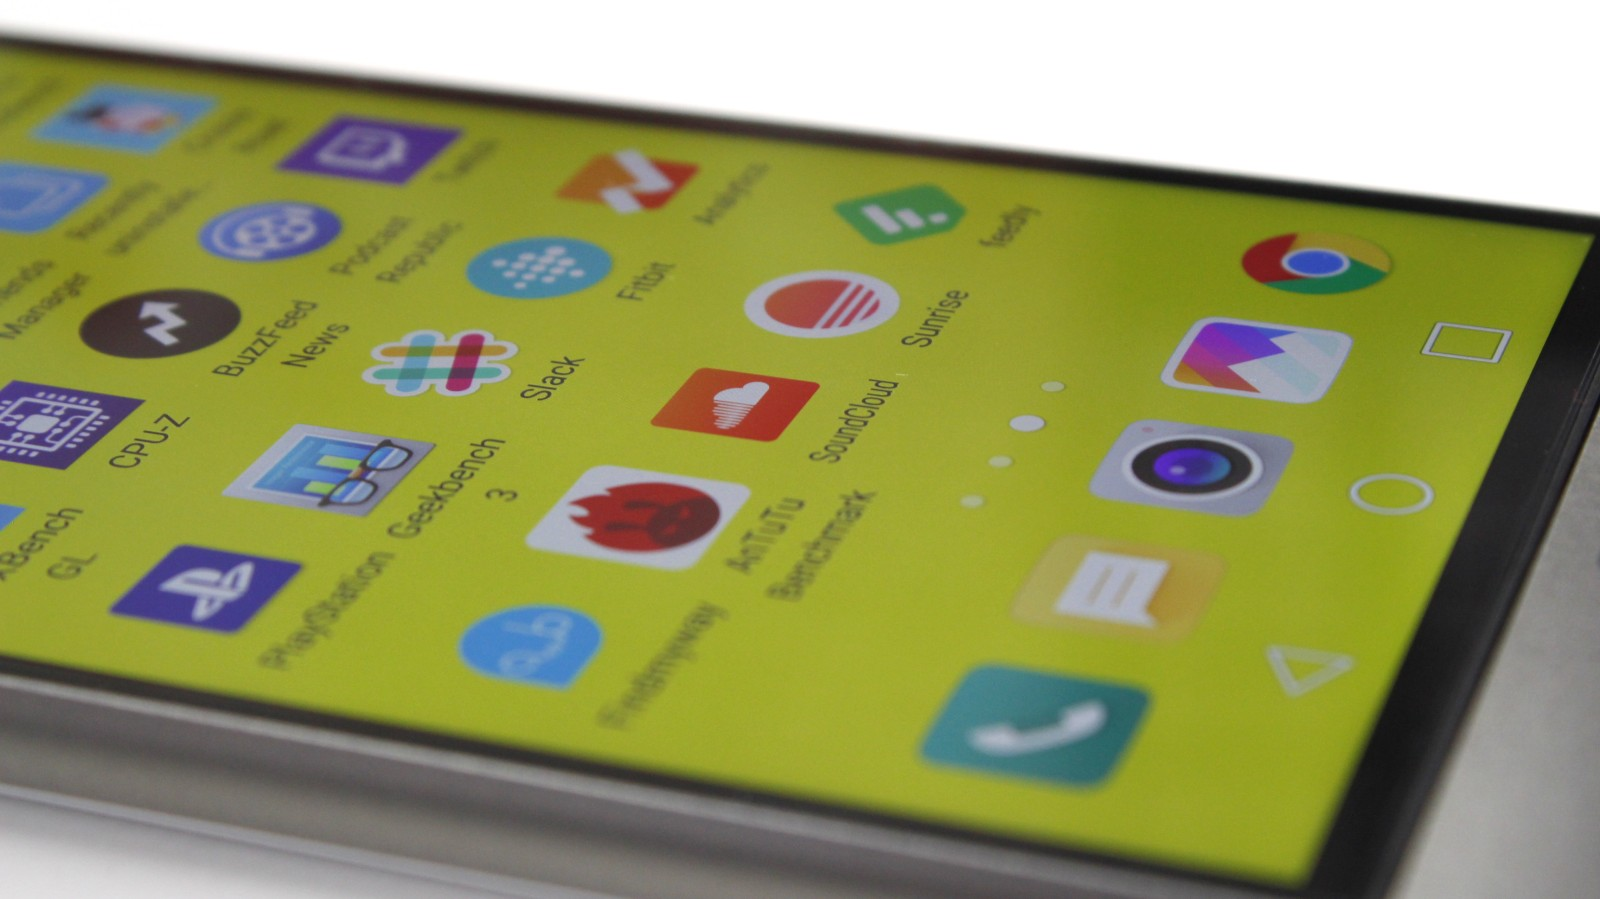 LG G5 review 14